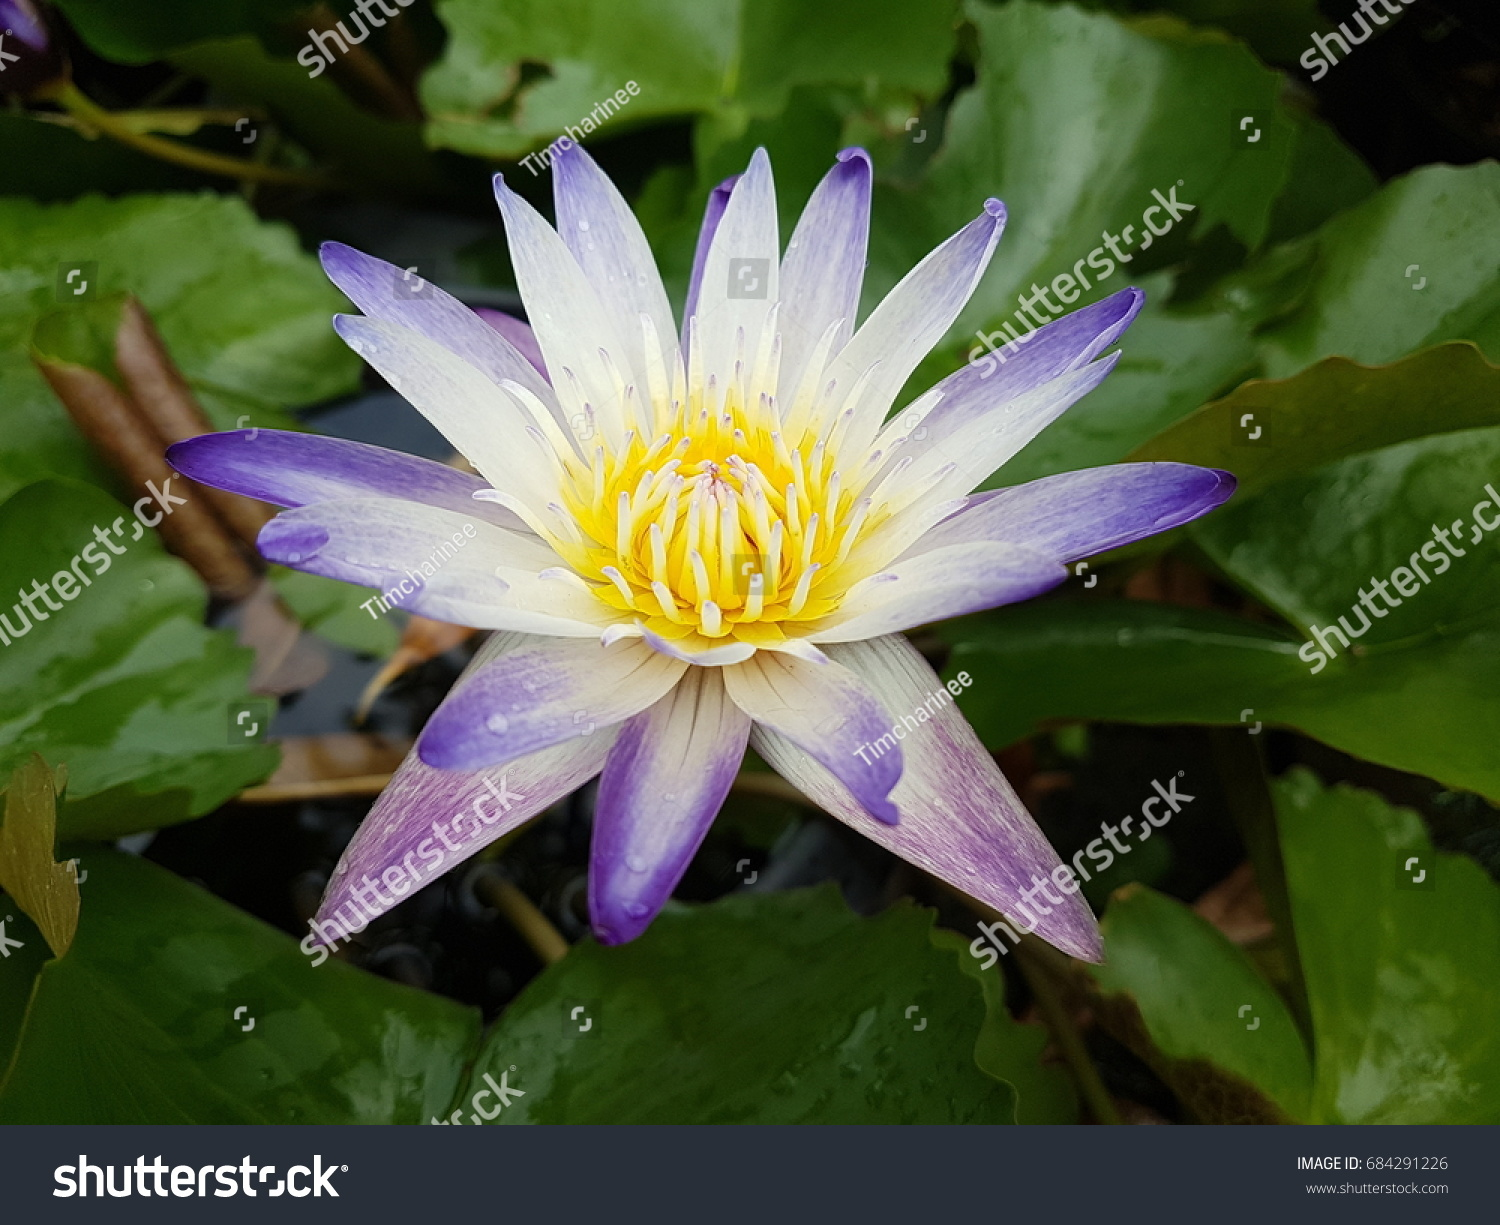 White and purple lily pad flower ez canvas id 684291226 izmirmasajfo